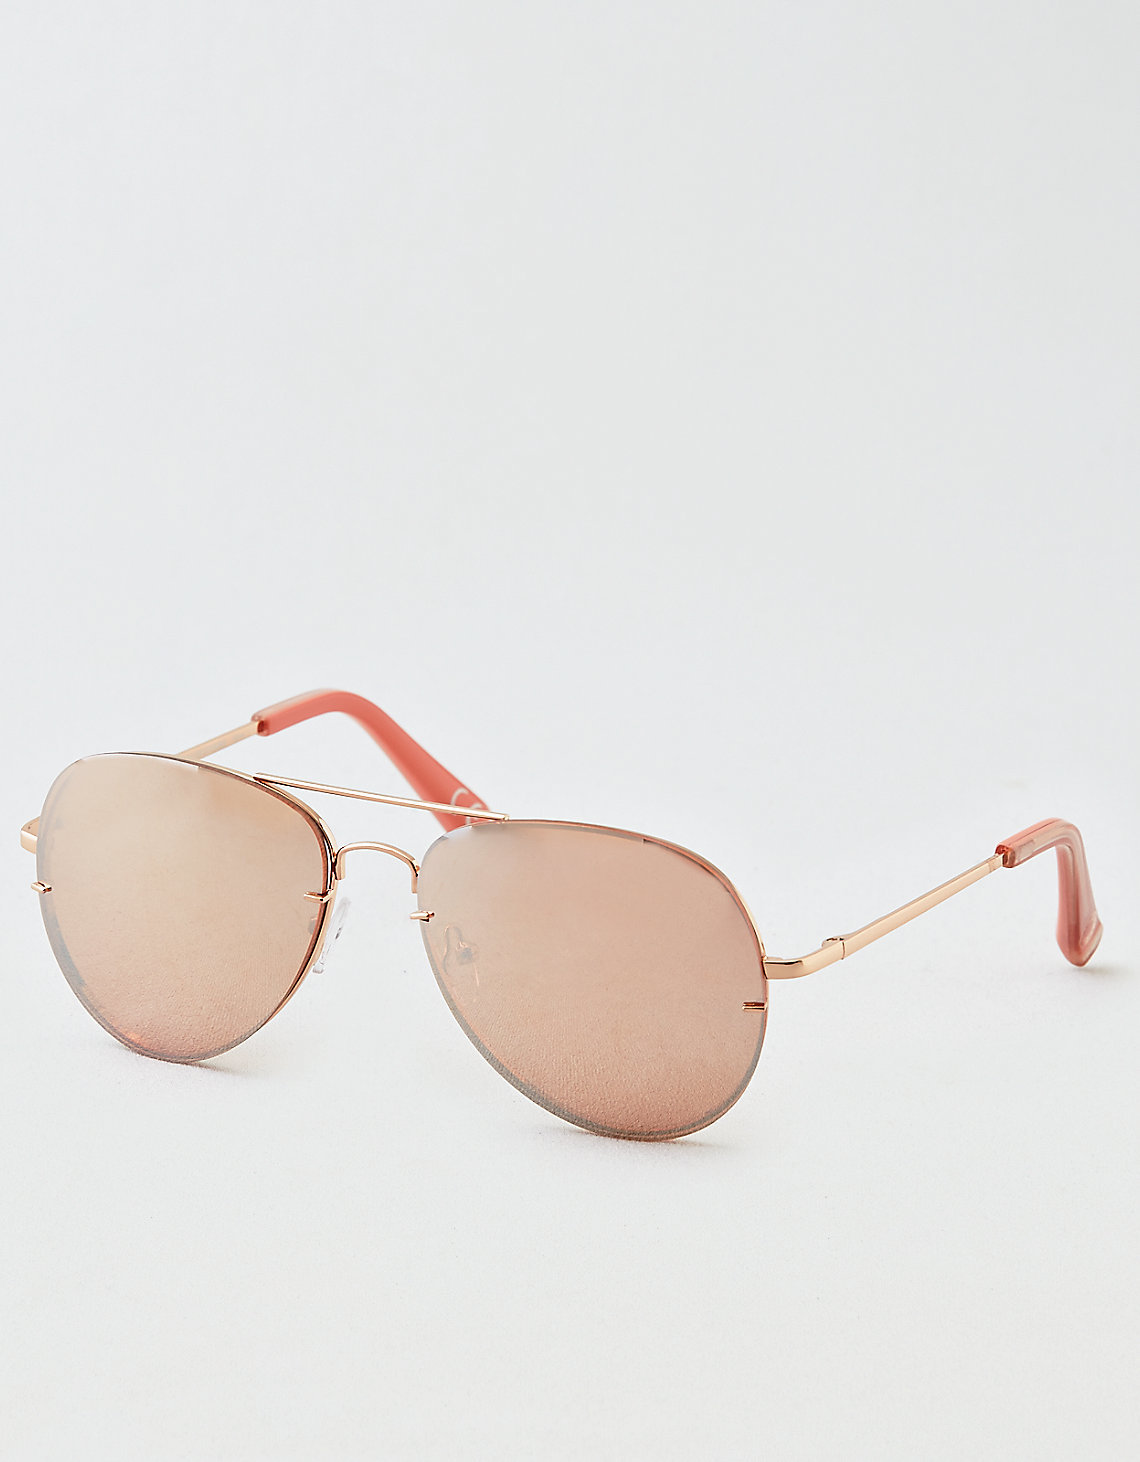 959247d0c1 AEO Frameless Aviator Sunglasses